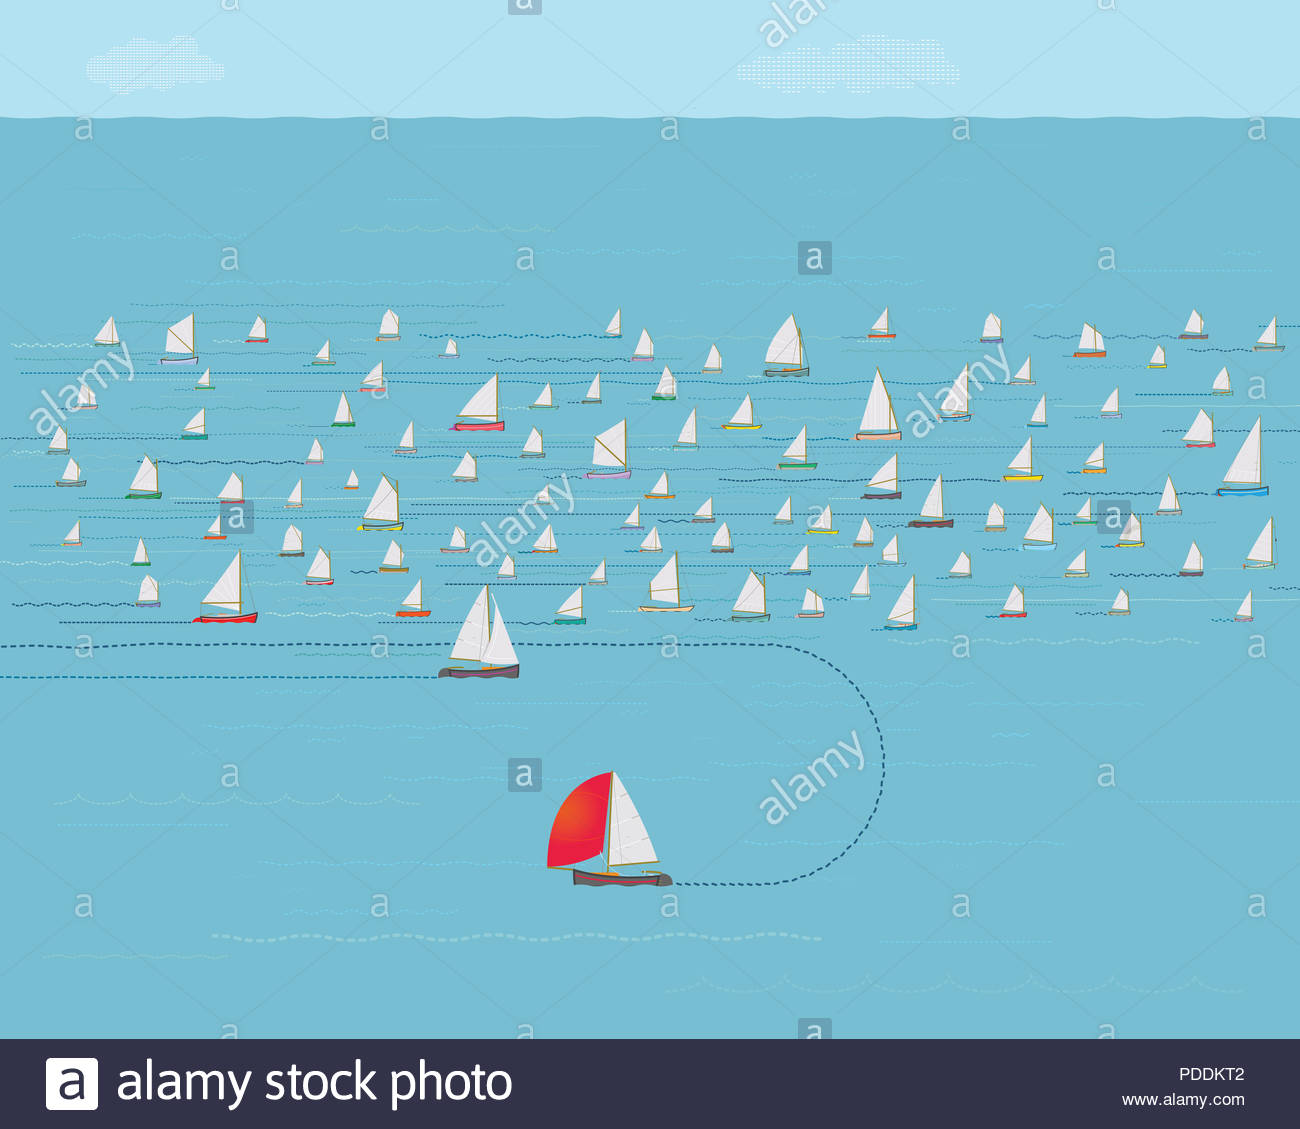 Sailboat changing direction, New Direction, Business Strategy Concept, Nautical , Illustration, Concepts & Topics, Data, Sailing, Timing, Precision - Stock Image